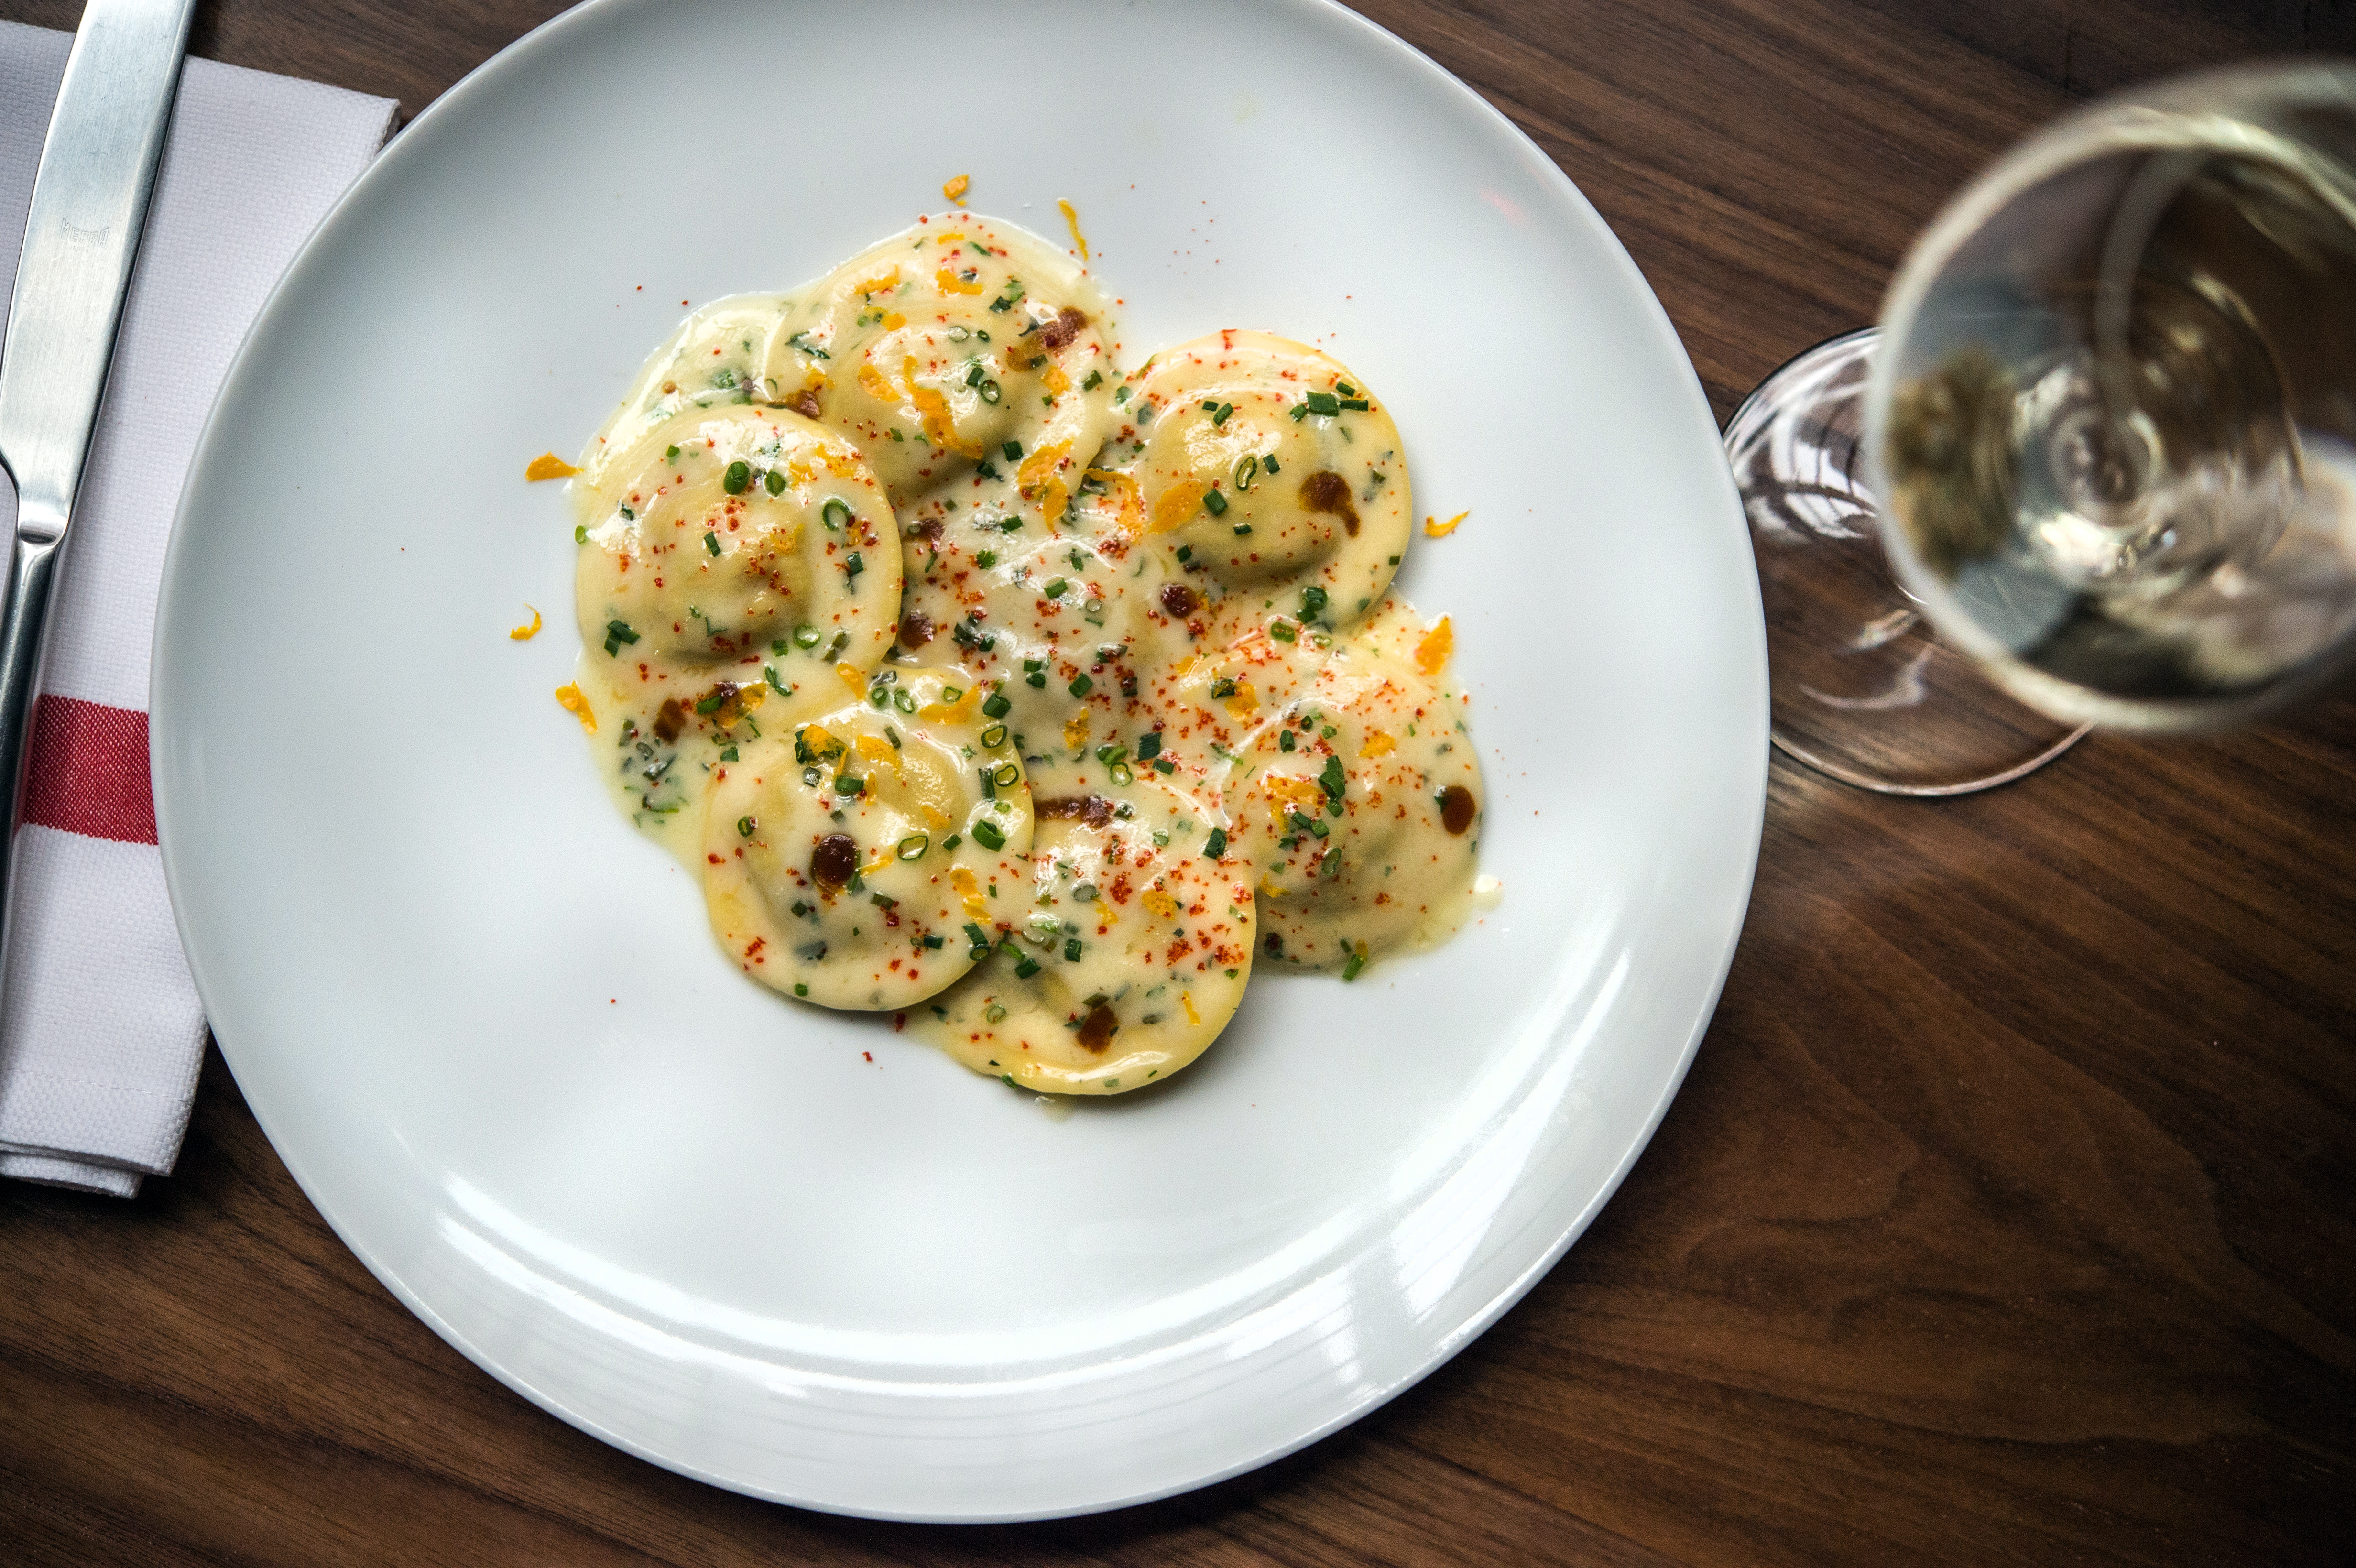 the new union square cafe isn't all that thrilling — but it gives